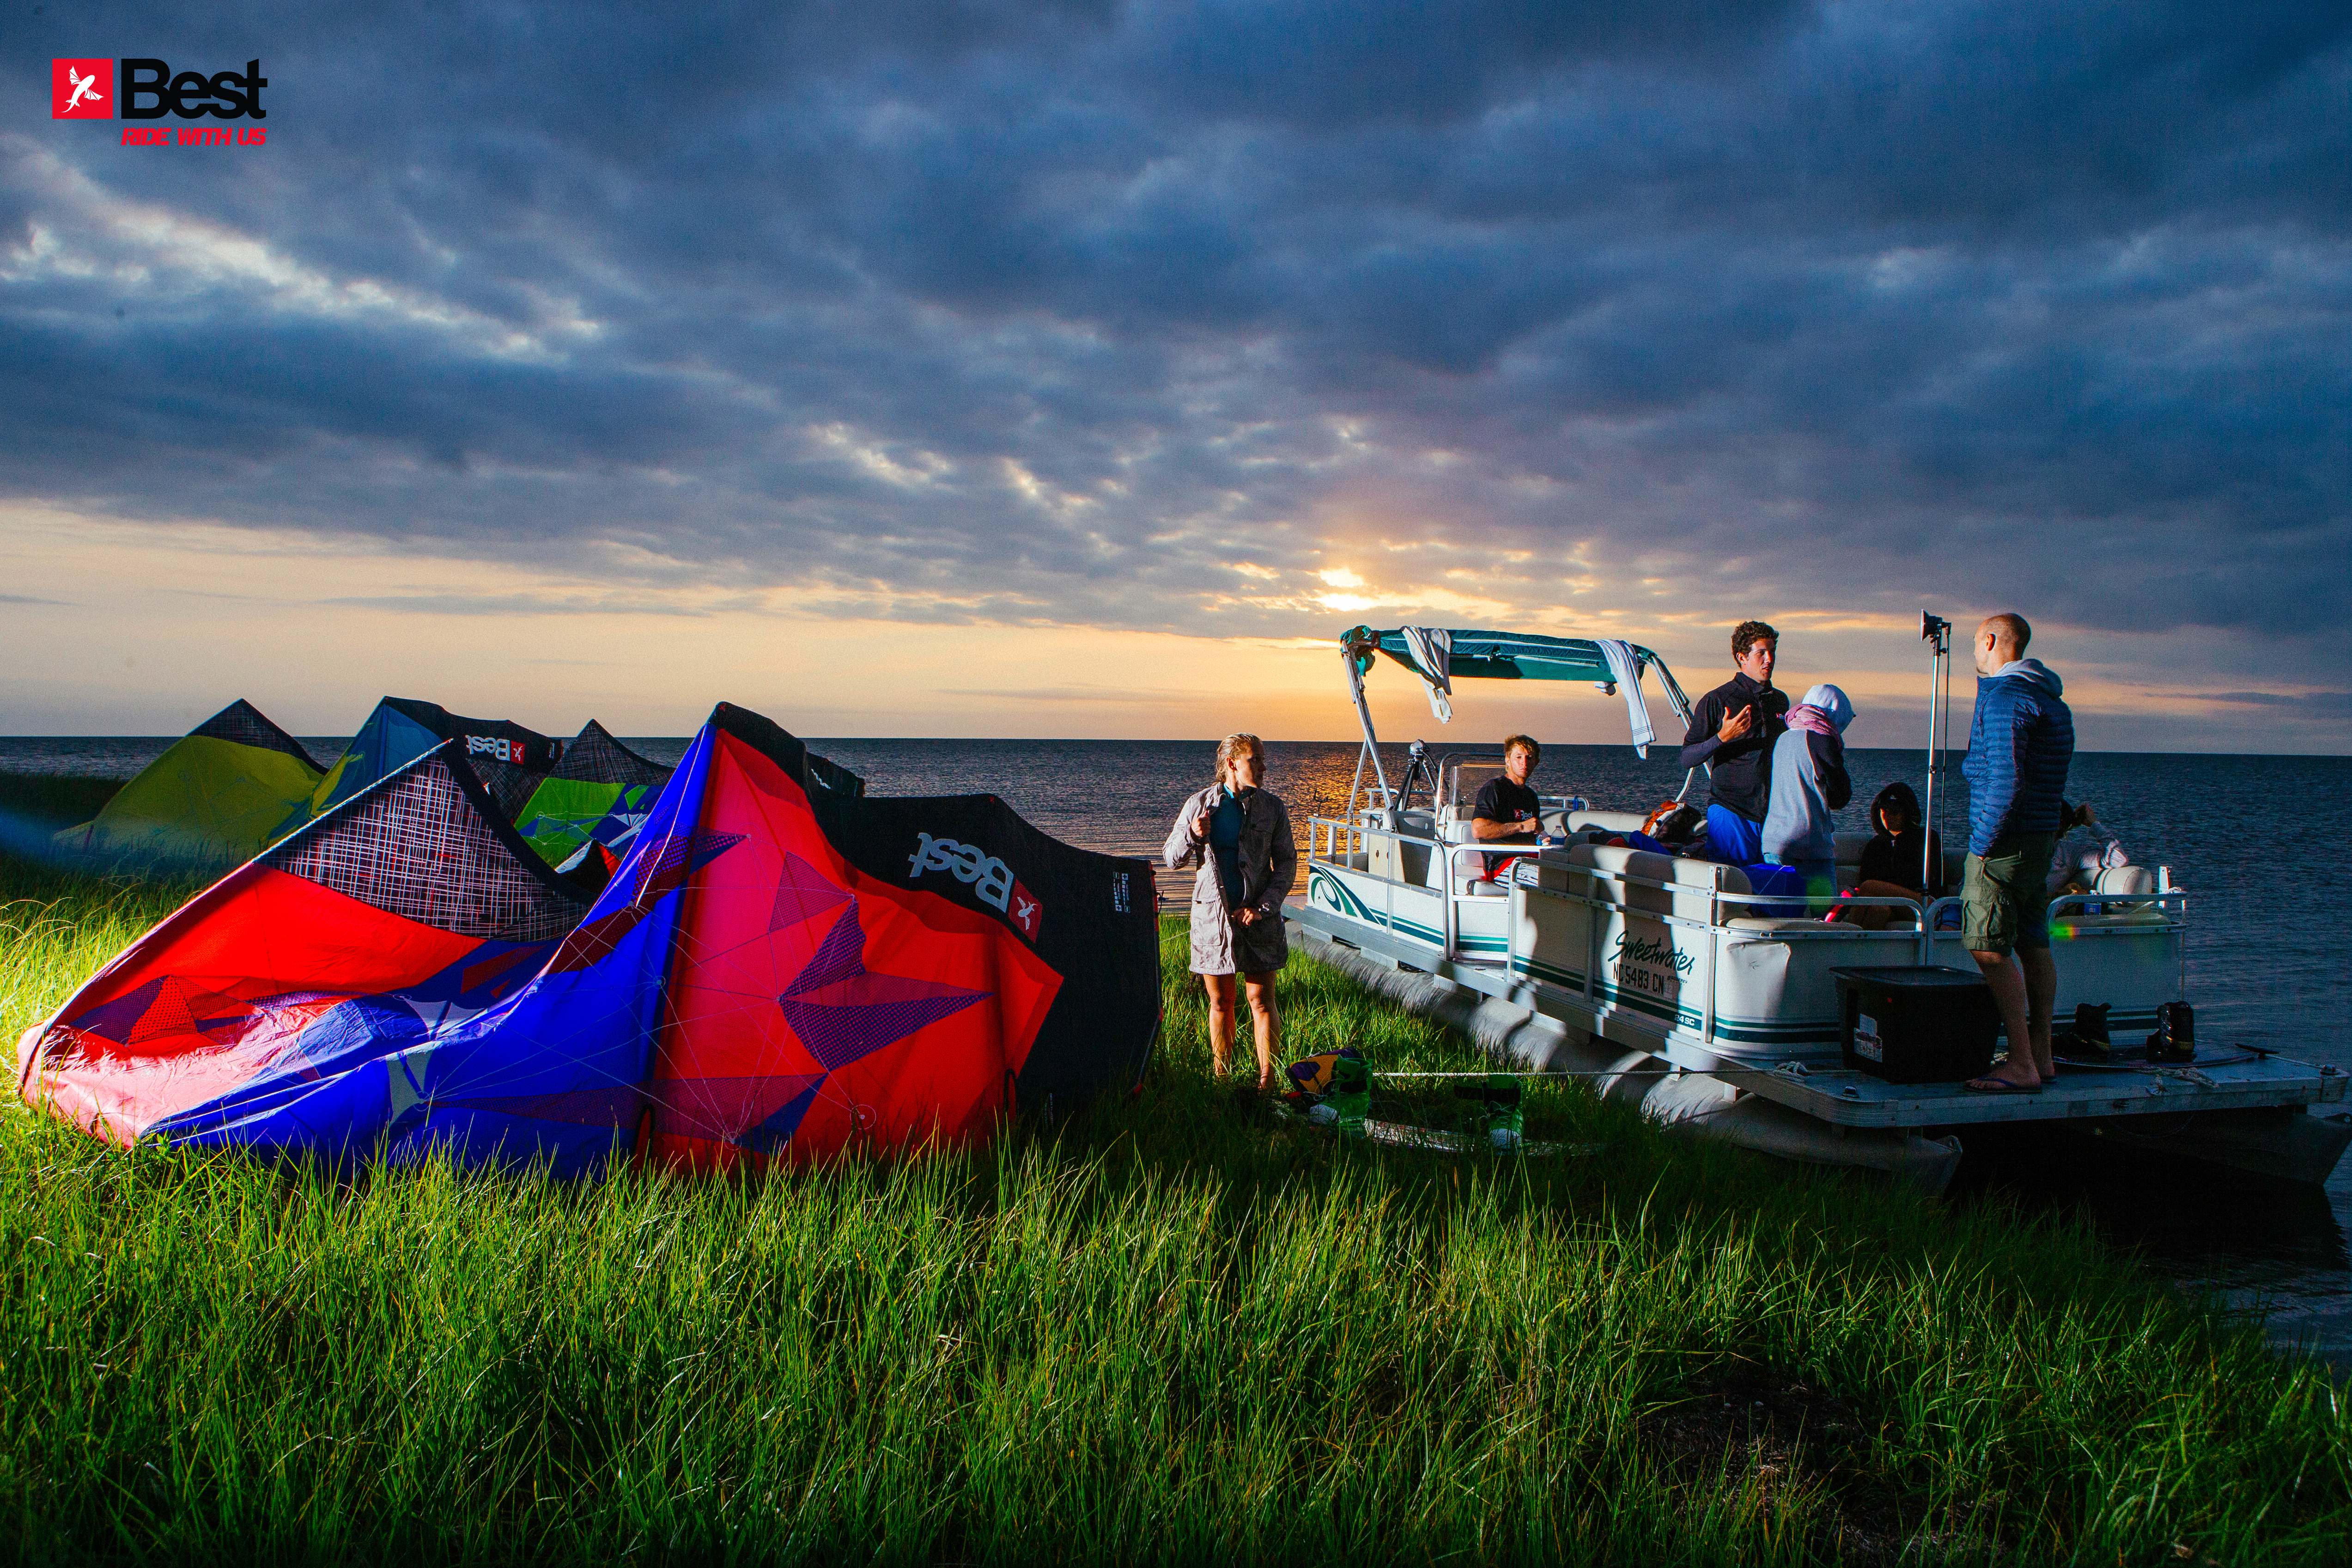 kitesurf wallpaper image - The Best kiteboarding crew chilling out at Cape Hatteras after a day on the water - in resolution: Original 5091 X 3394